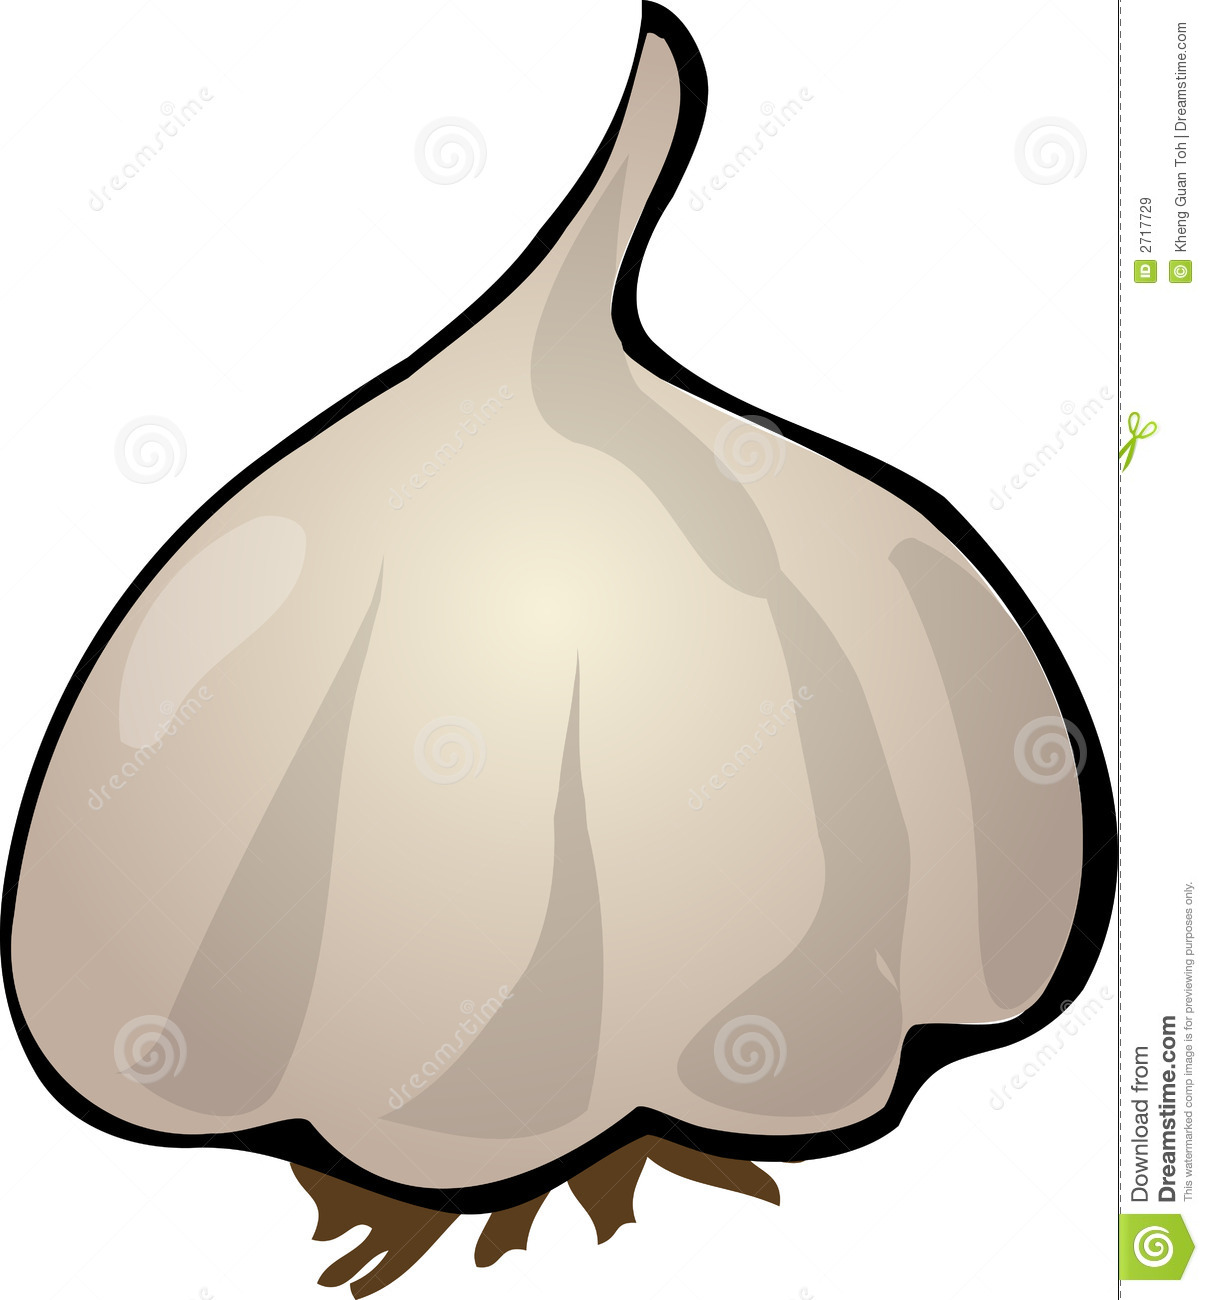 Garlic Clipart - Clipart Suggest